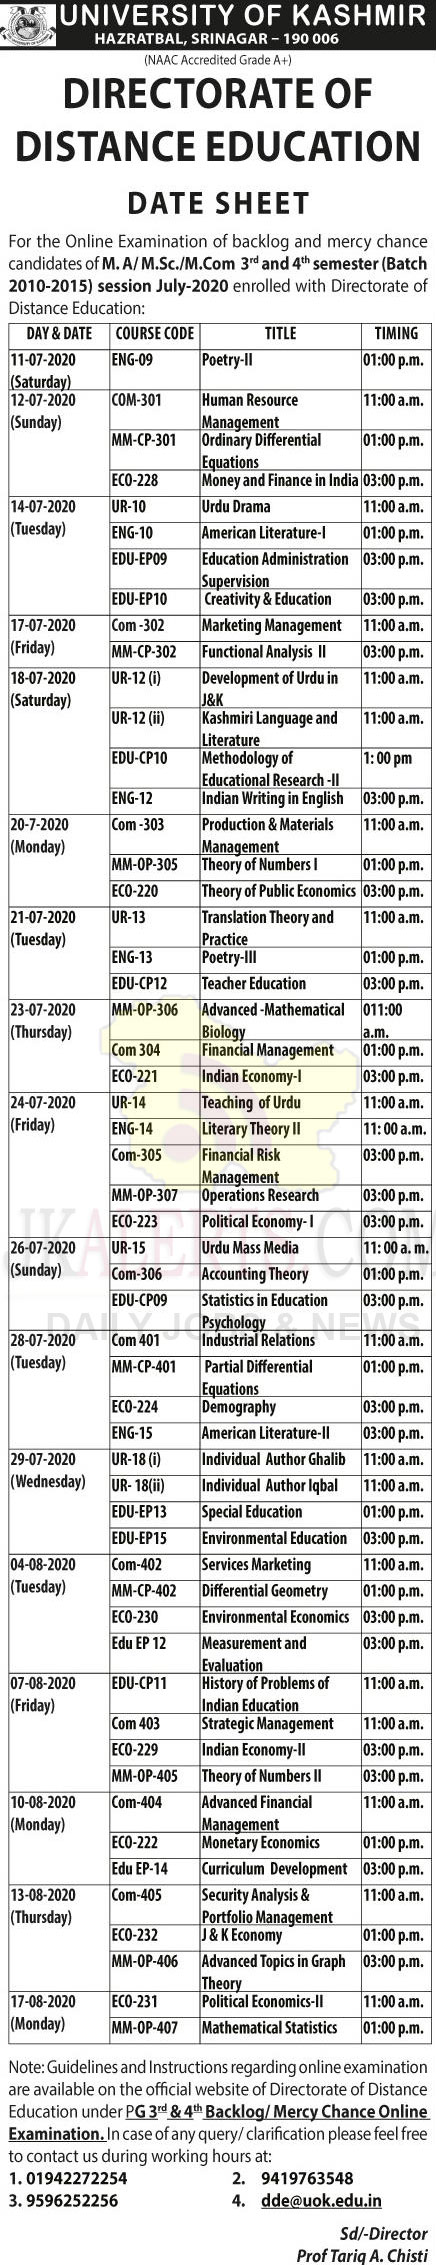 Kashmir University Distance Education Date Sheet M.A, M,Sc, M.Com.